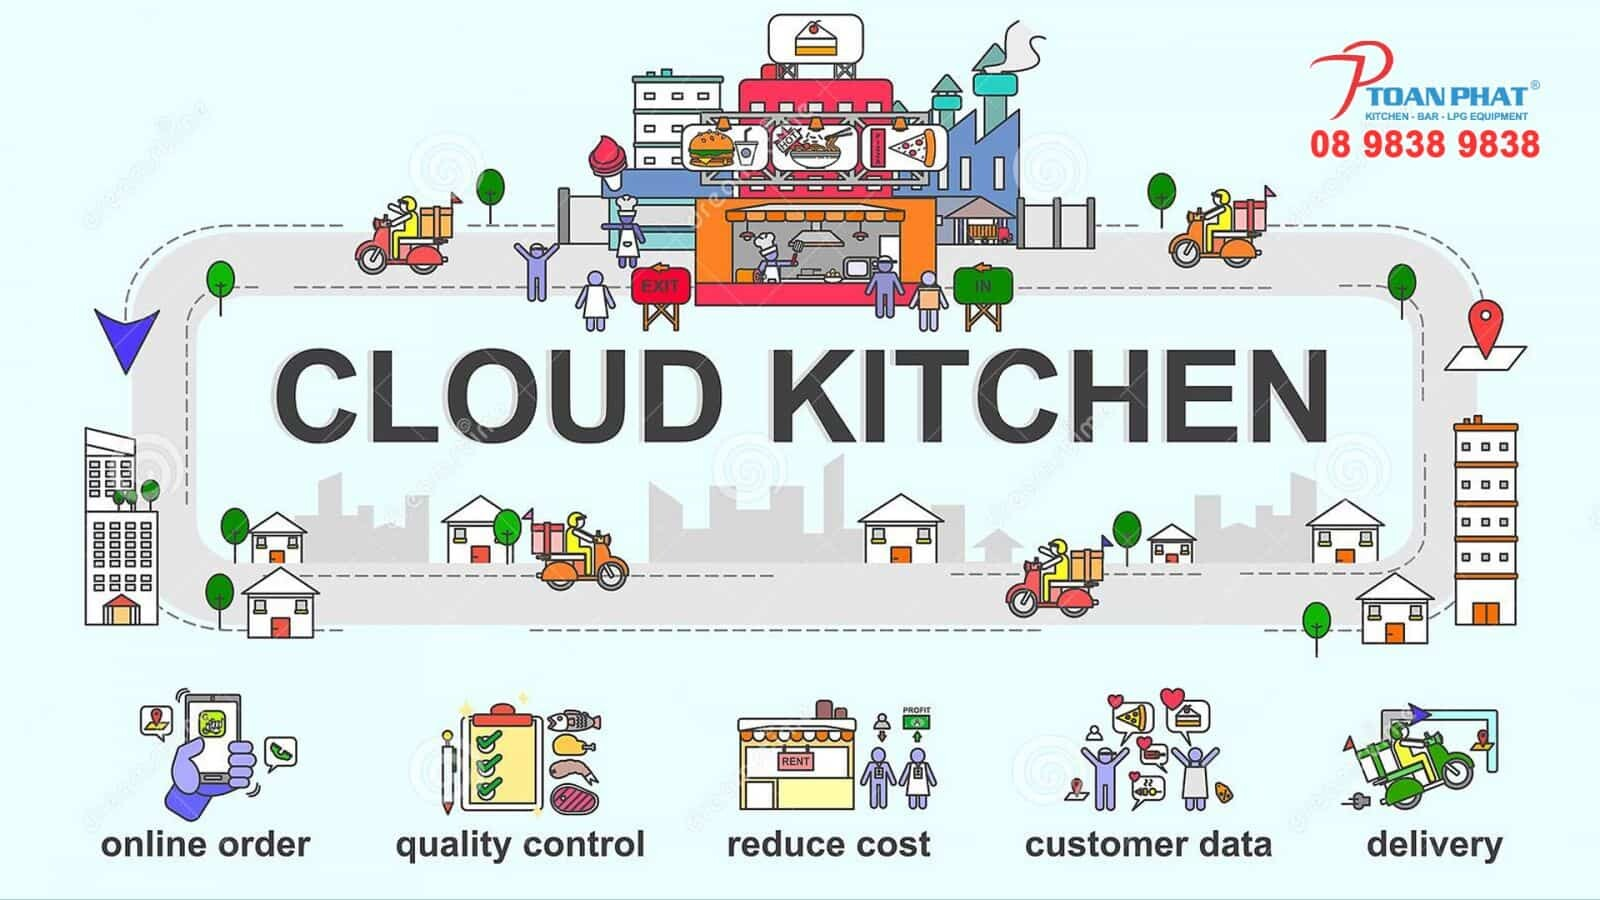 quy-trinh-hoat-dong-cloud-kitchen